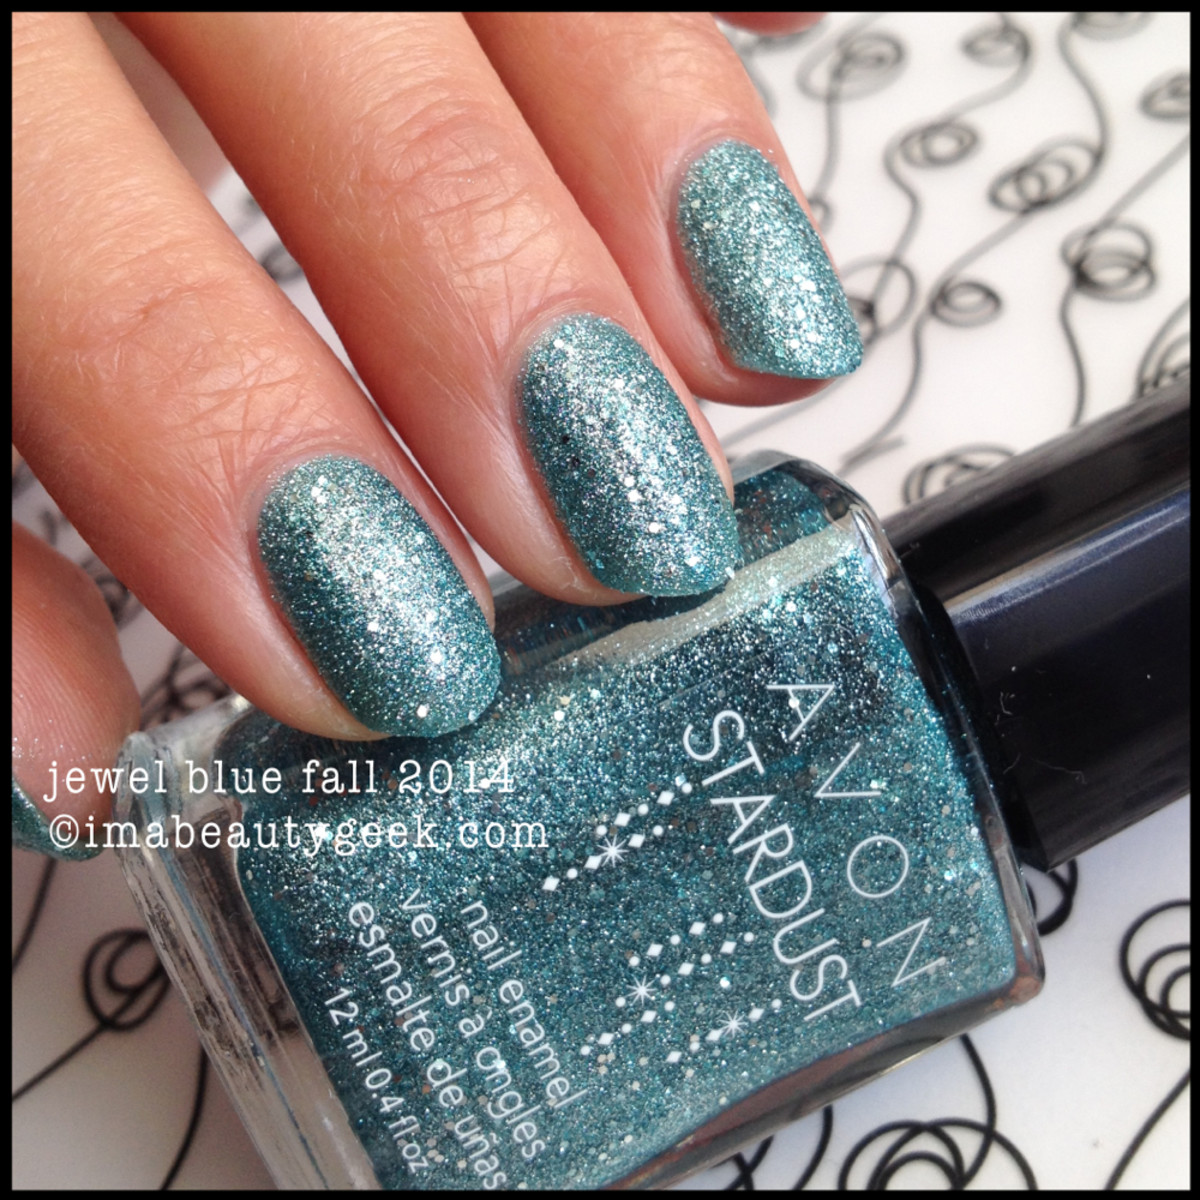 Avon Stardust Jewel Blue Fall 2014